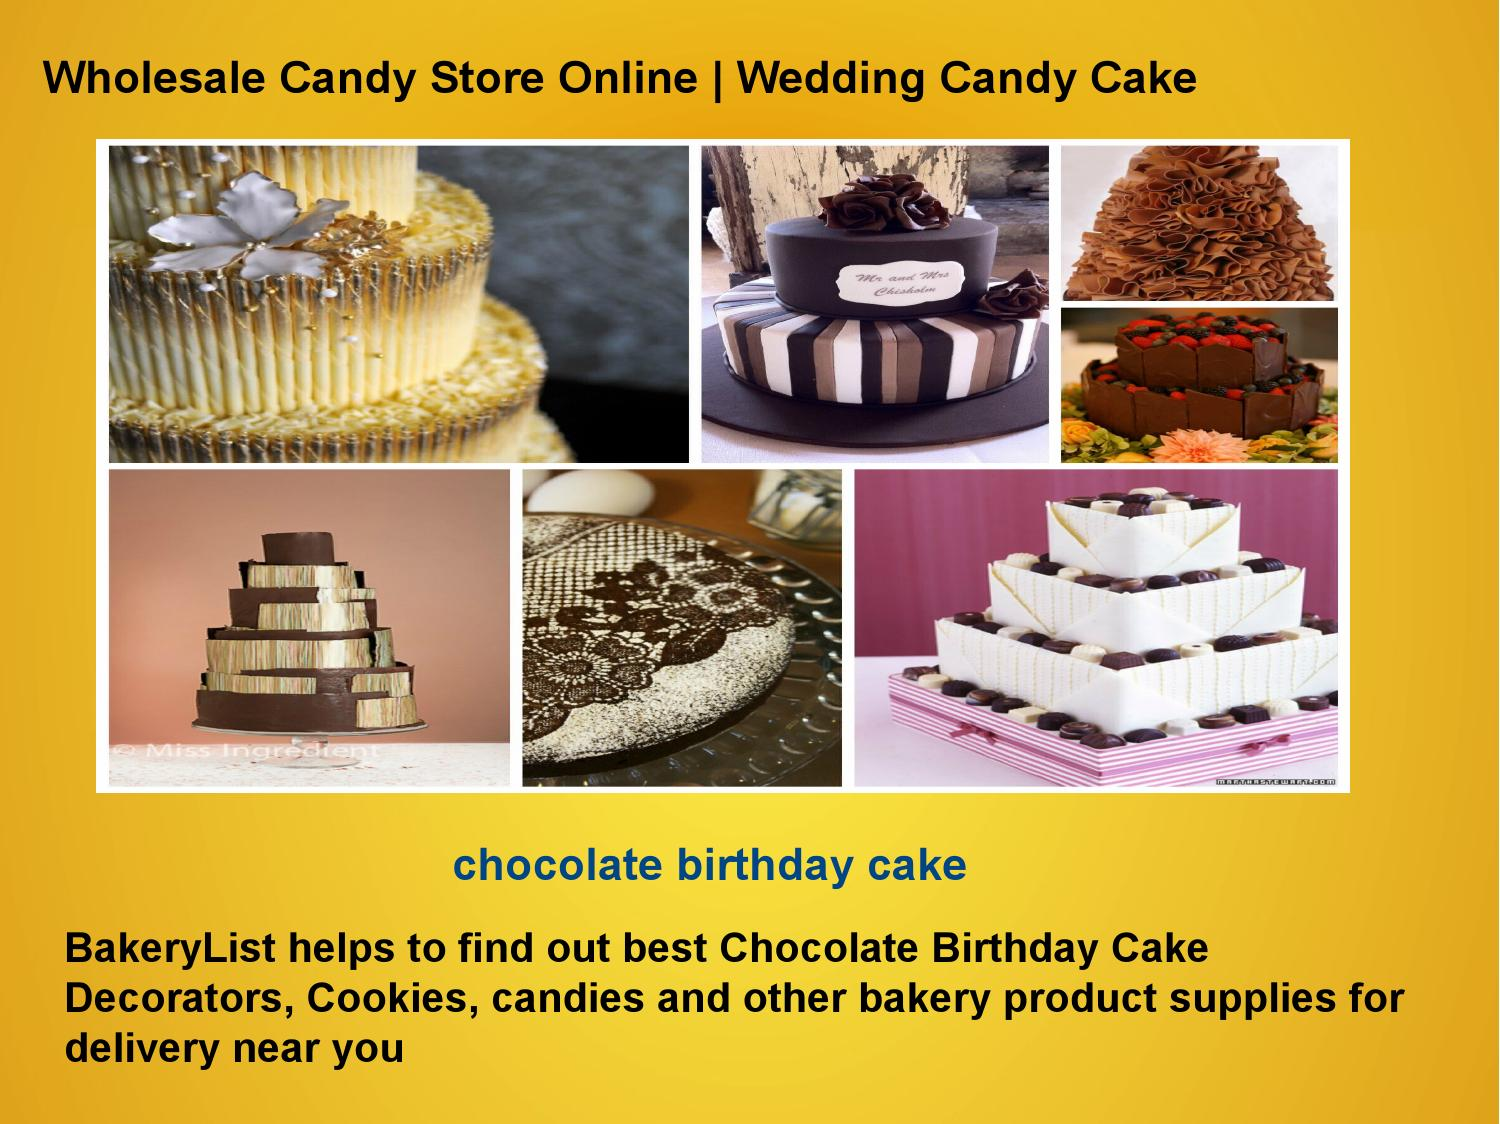 Cake Arts Bakery And Supplies : Birthday cake decorators by BakeryList - issuu